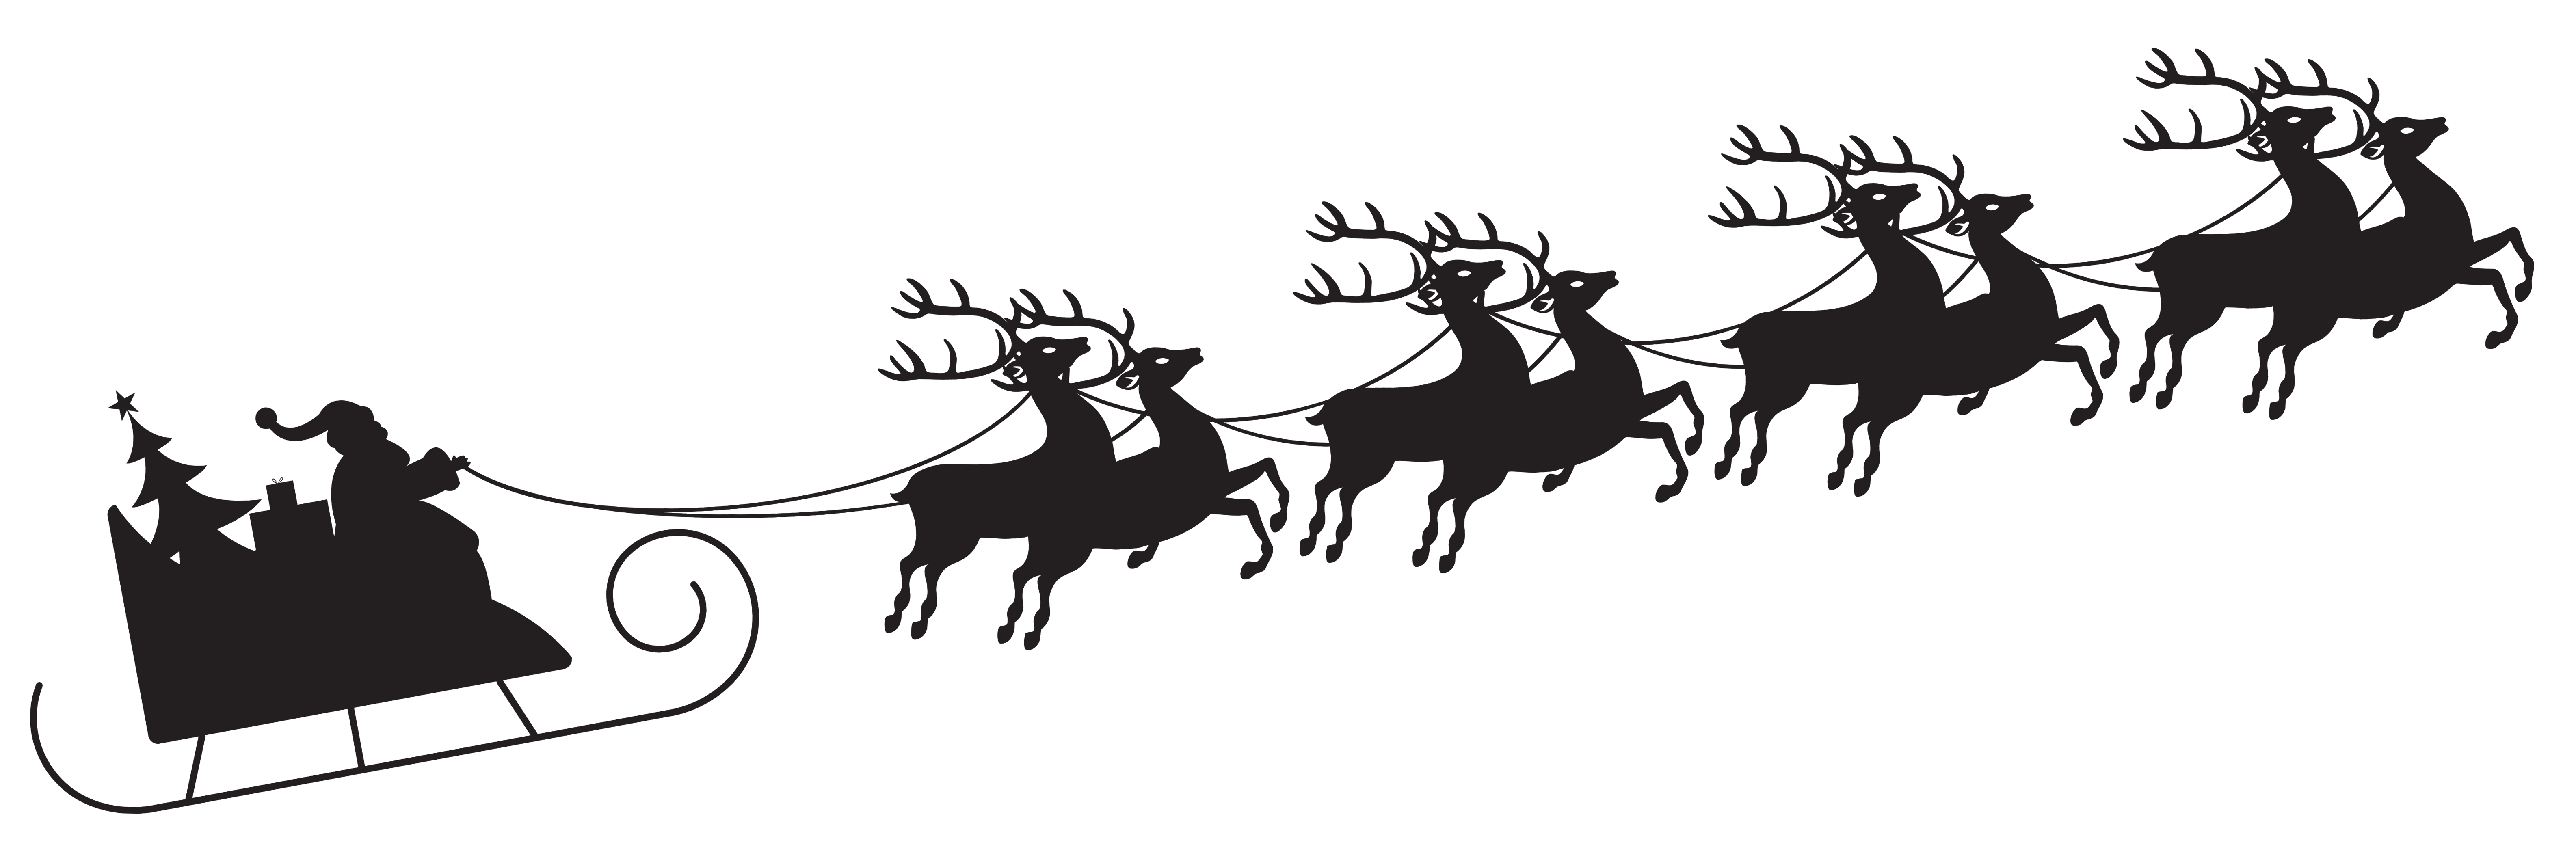 Horse christmas tree clipart graphic transparent download silhouette of horse drawn sleigh | Gallery For > Santa Sleigh ... graphic transparent download